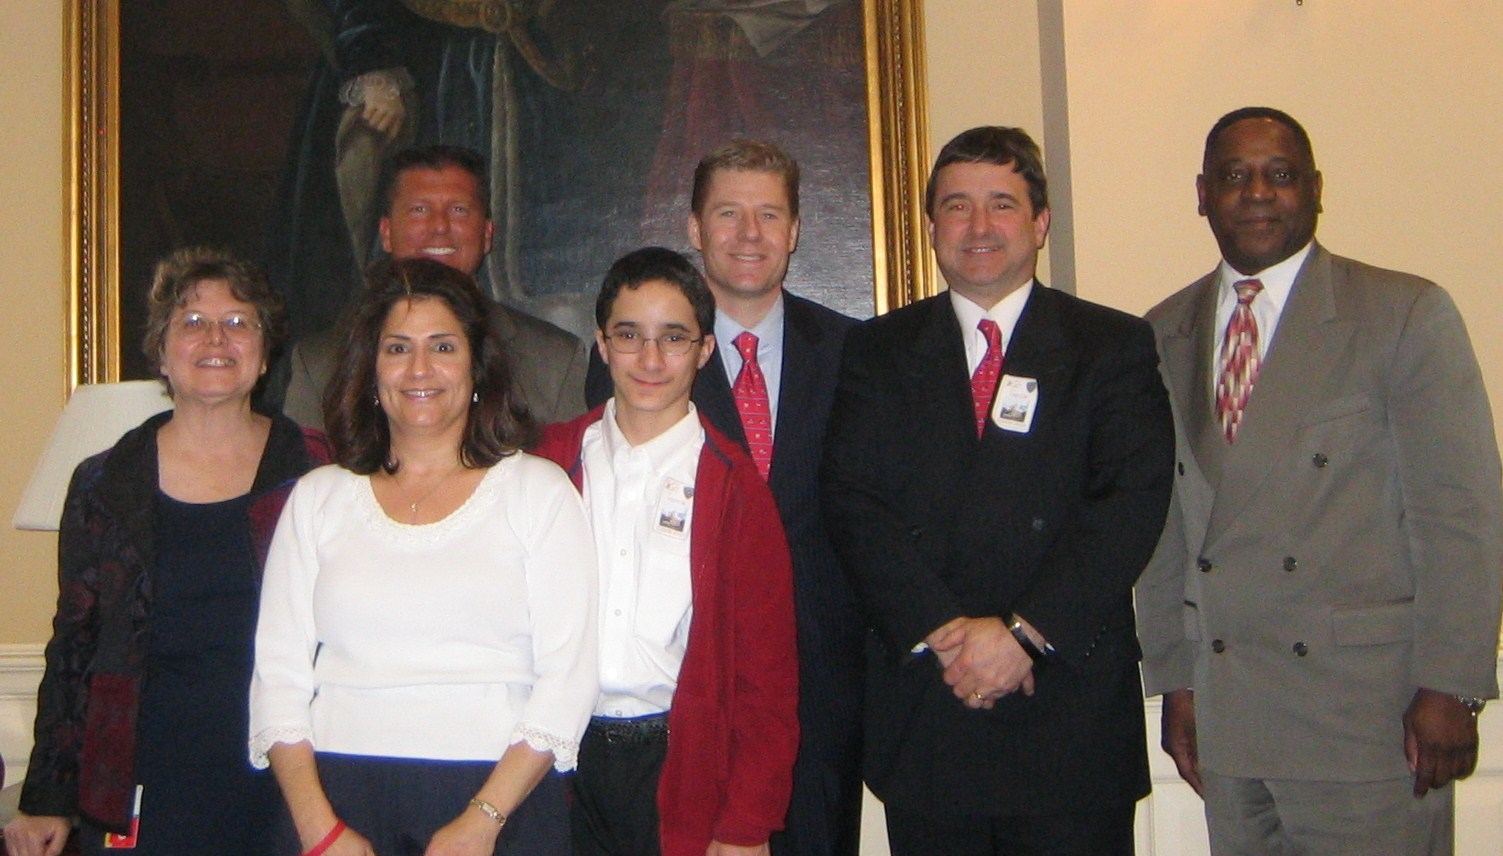 Linda, Brian, George, Kia, Darrin and Eric after delivering testimony before the Maryland Senate on Feb. 29, 2008.